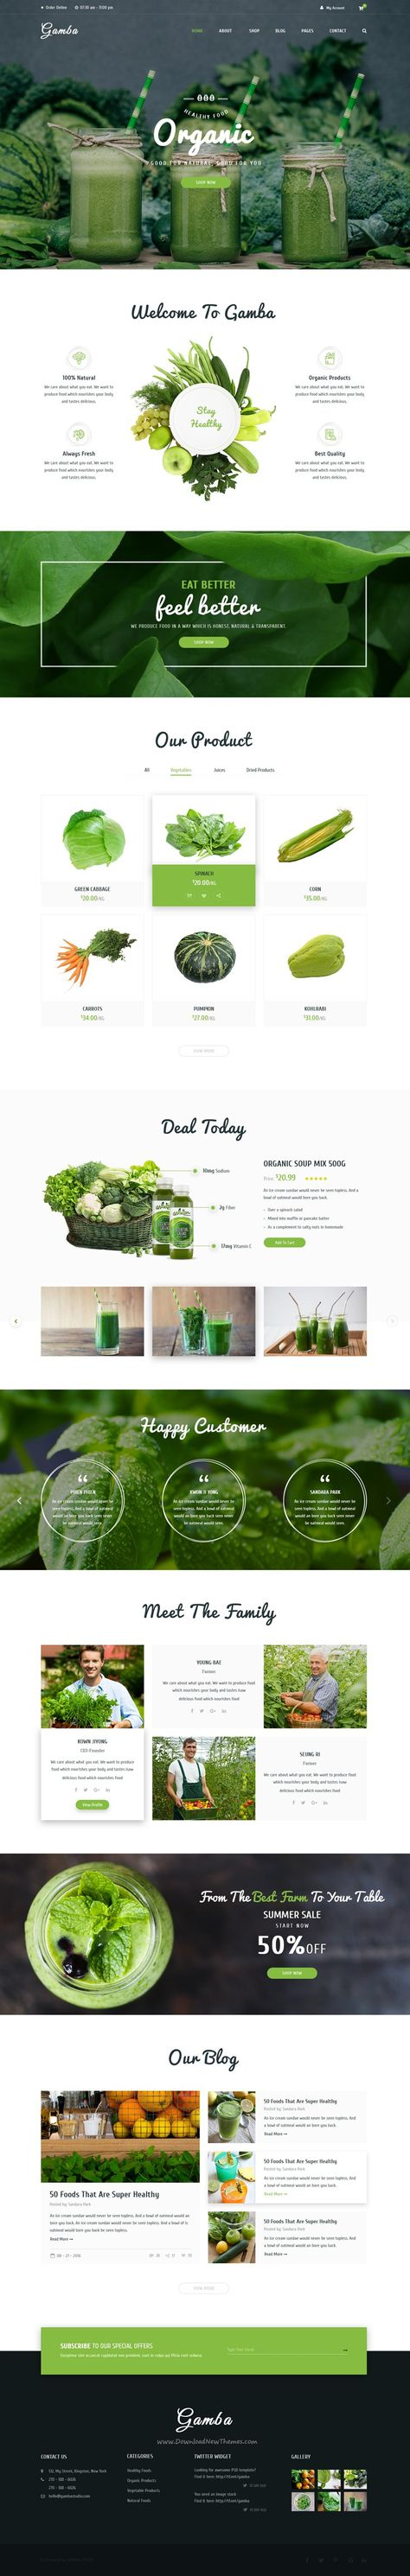 Gamba is a powerful, modern and creative #PSD template designed for food #organic #shop websites download now➯ https://themeforest.net/item/gamba-organic-psd-template/16928343?ref=Dataasata